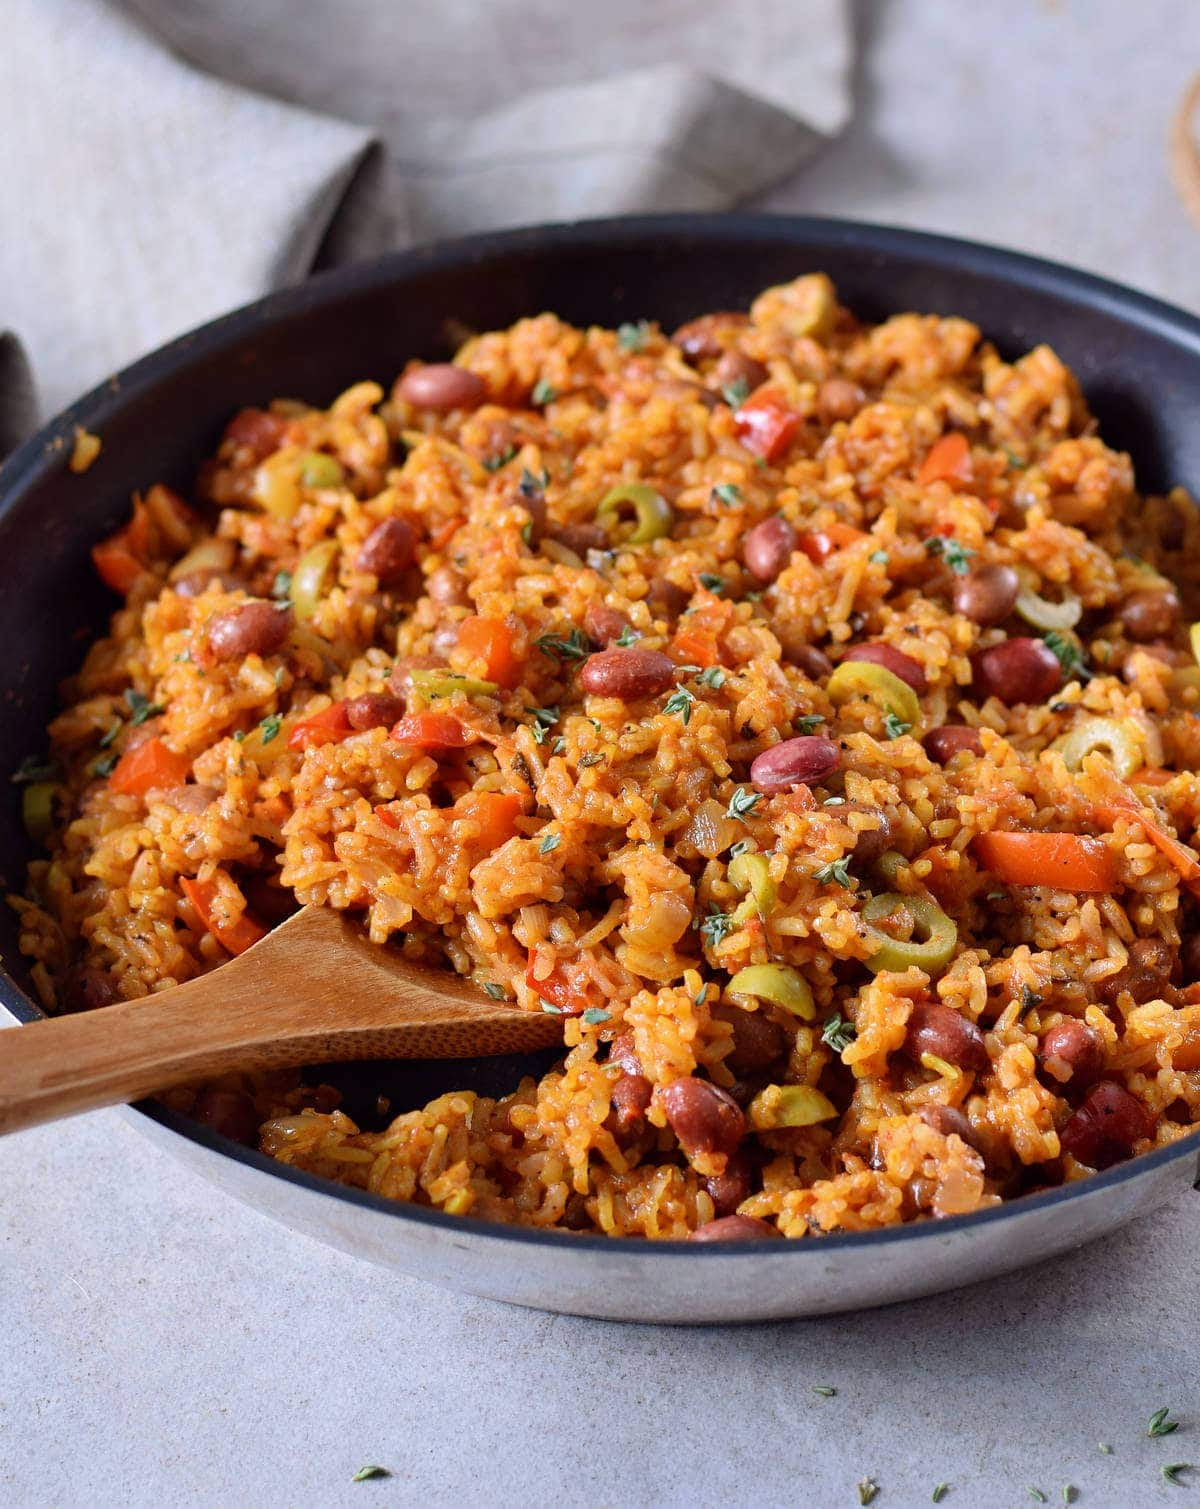 close-up of Spanish rice and beans with olives in a pan